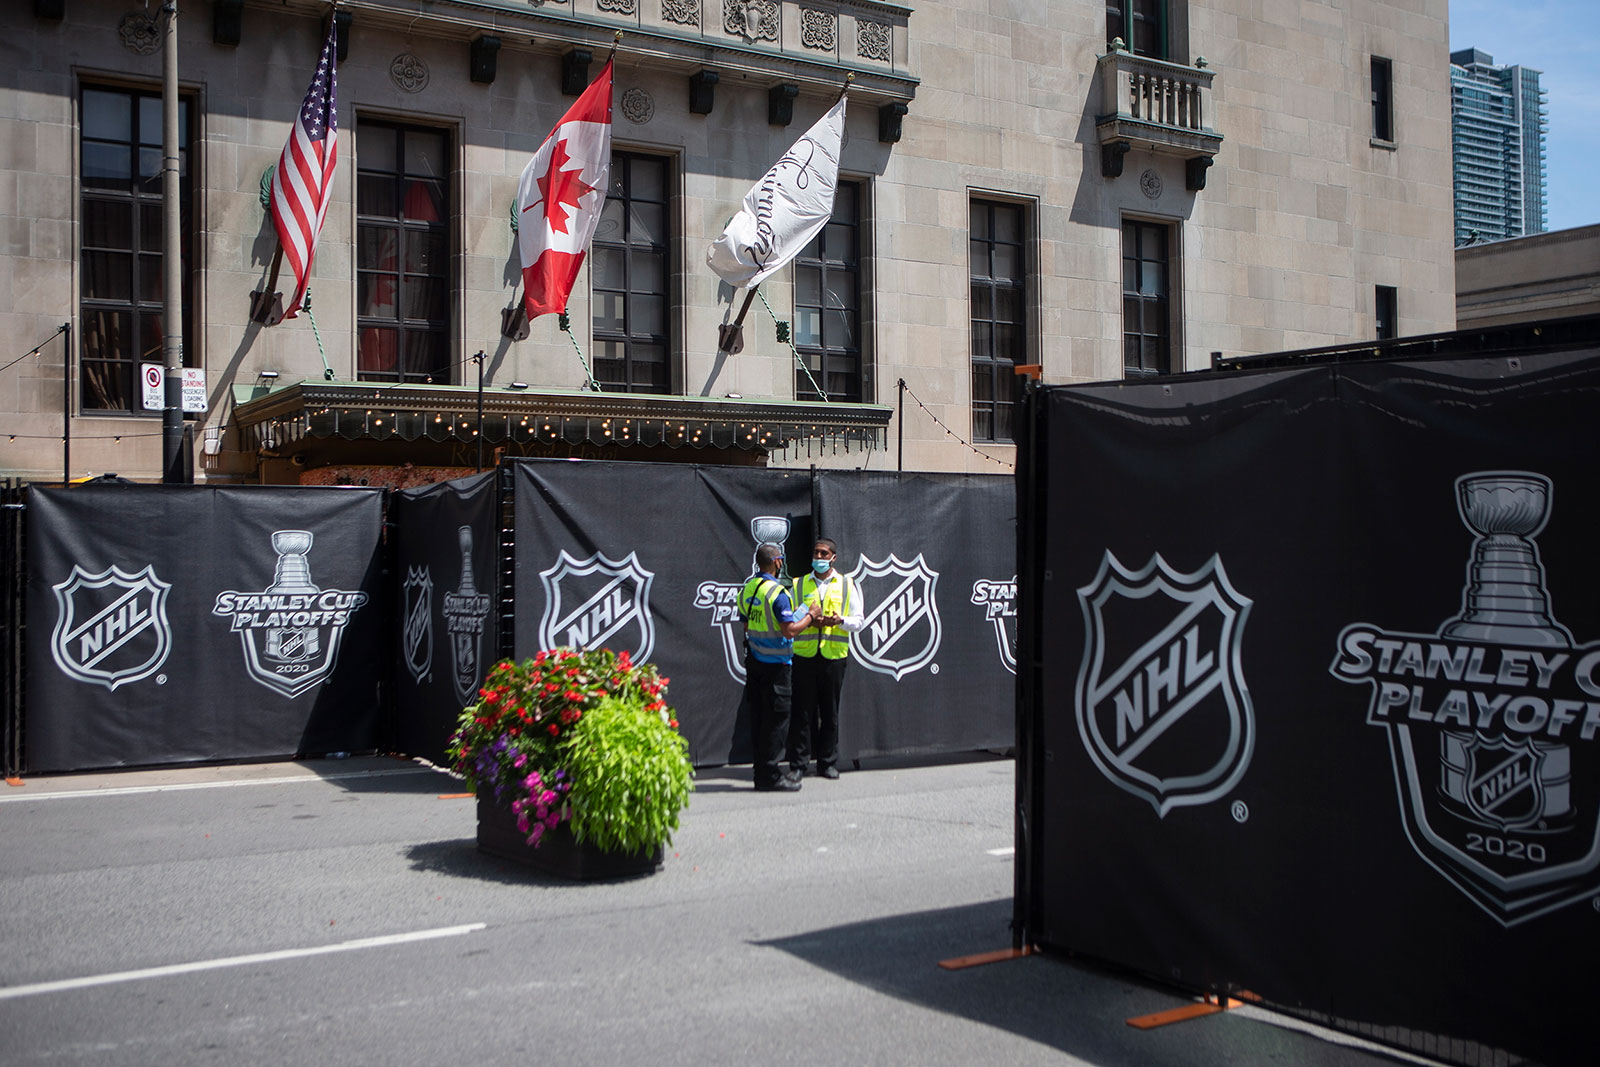 NHL signage surrounds a section of the Royal York hotel in Toronto on July 26. The NHL plans to resume play on August 1, with qualifying rounds in Edmonton and Toronto.